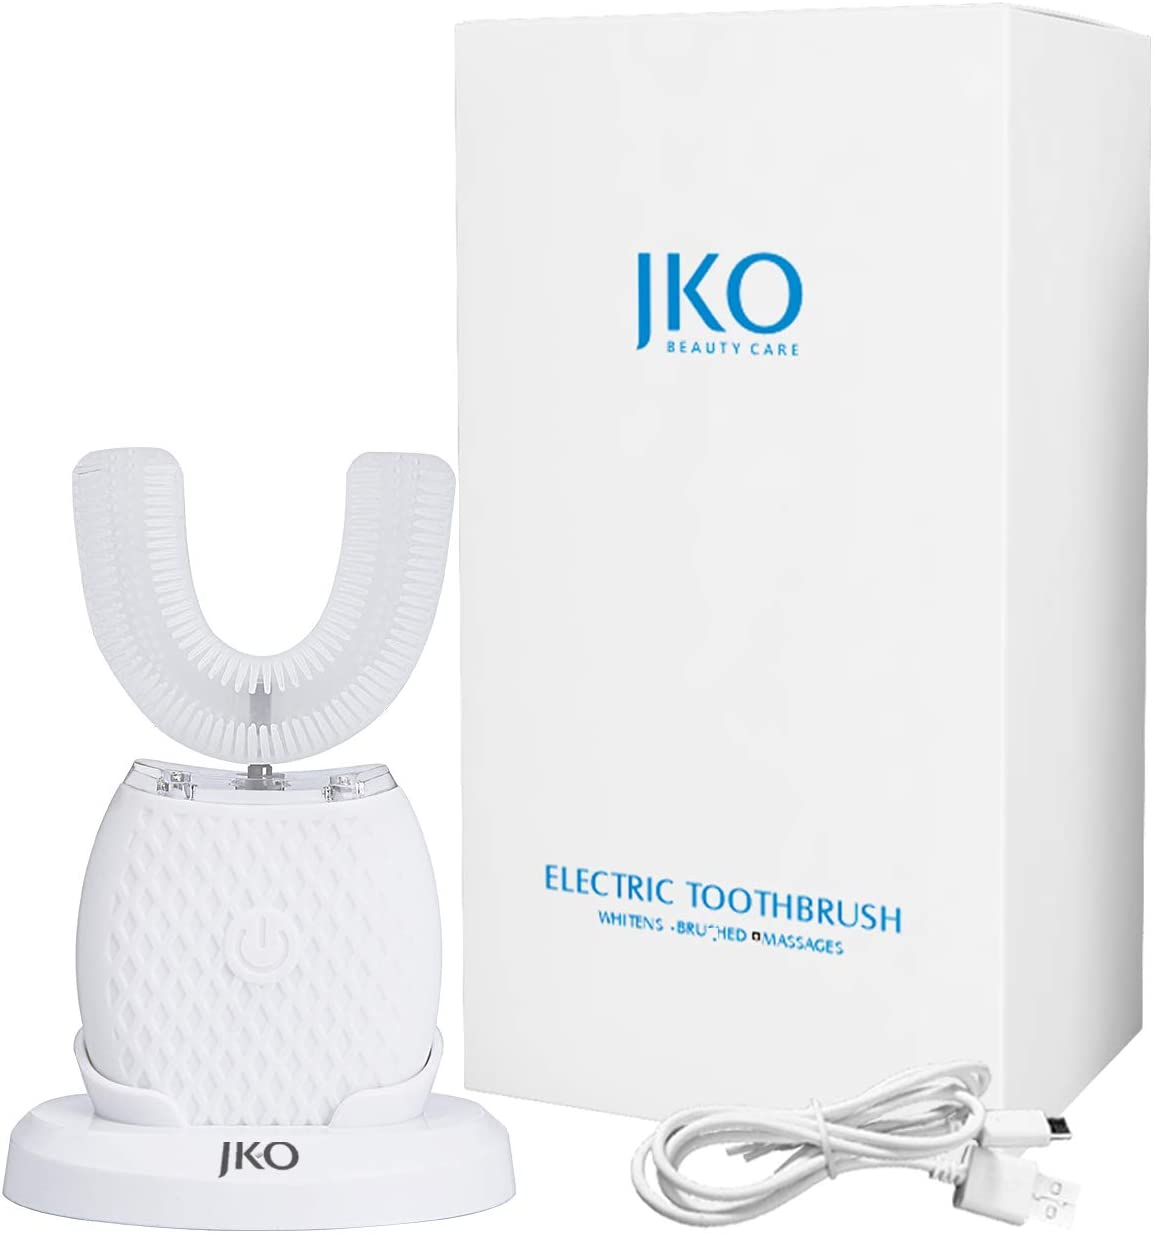 JKO Ultrasonic Toothbrush Electric for Adults Louisville-Jefferson County Mall Sonic Toothbrushes Omaha Mall